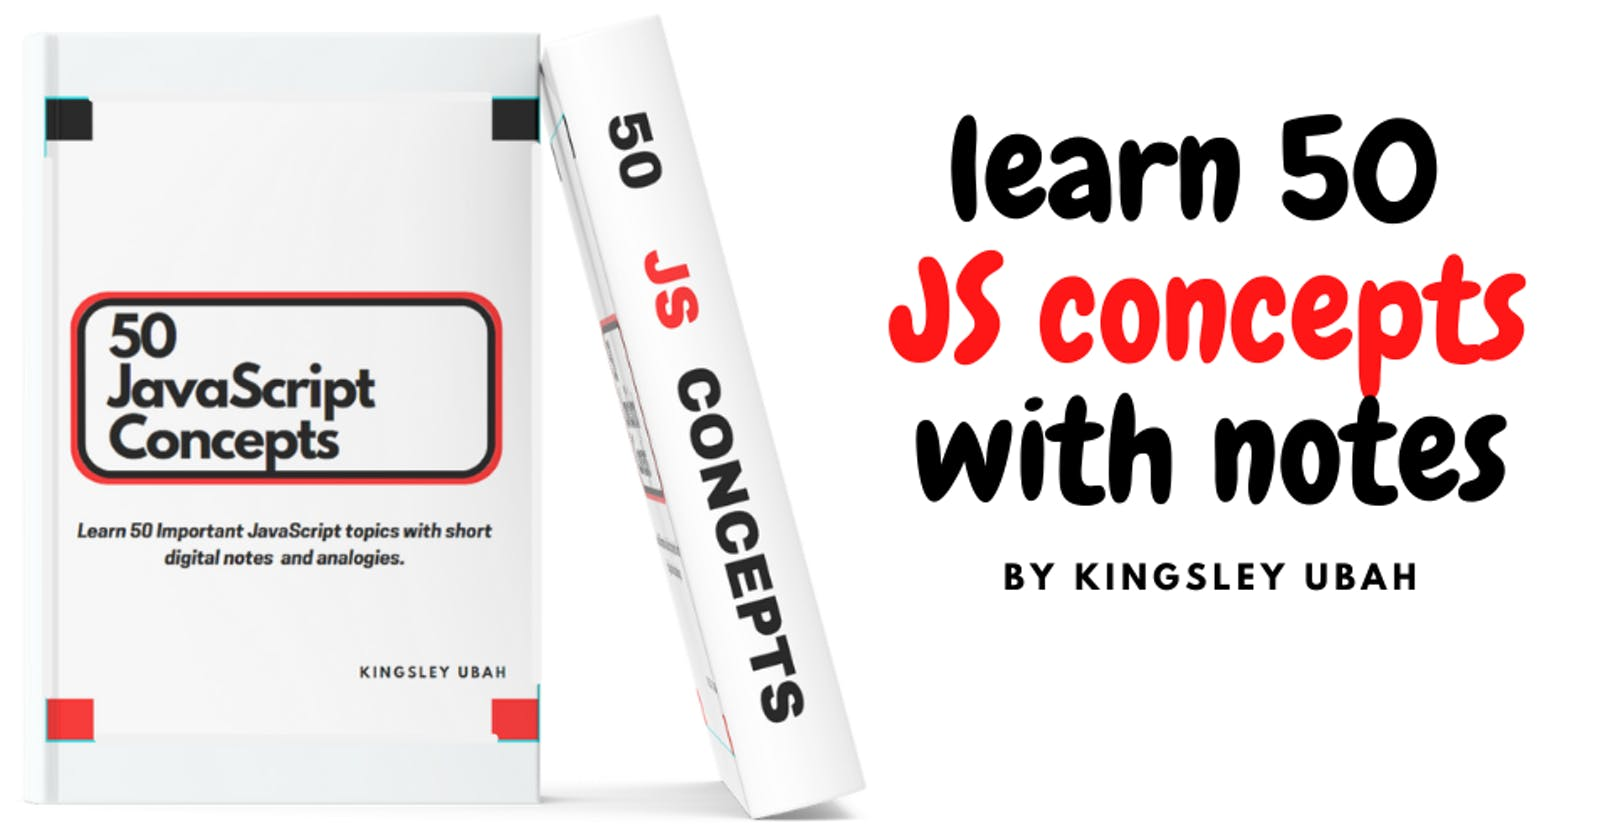 I just made an eBook: Learn 50 concepts in JavaScript with notes and illustrations!